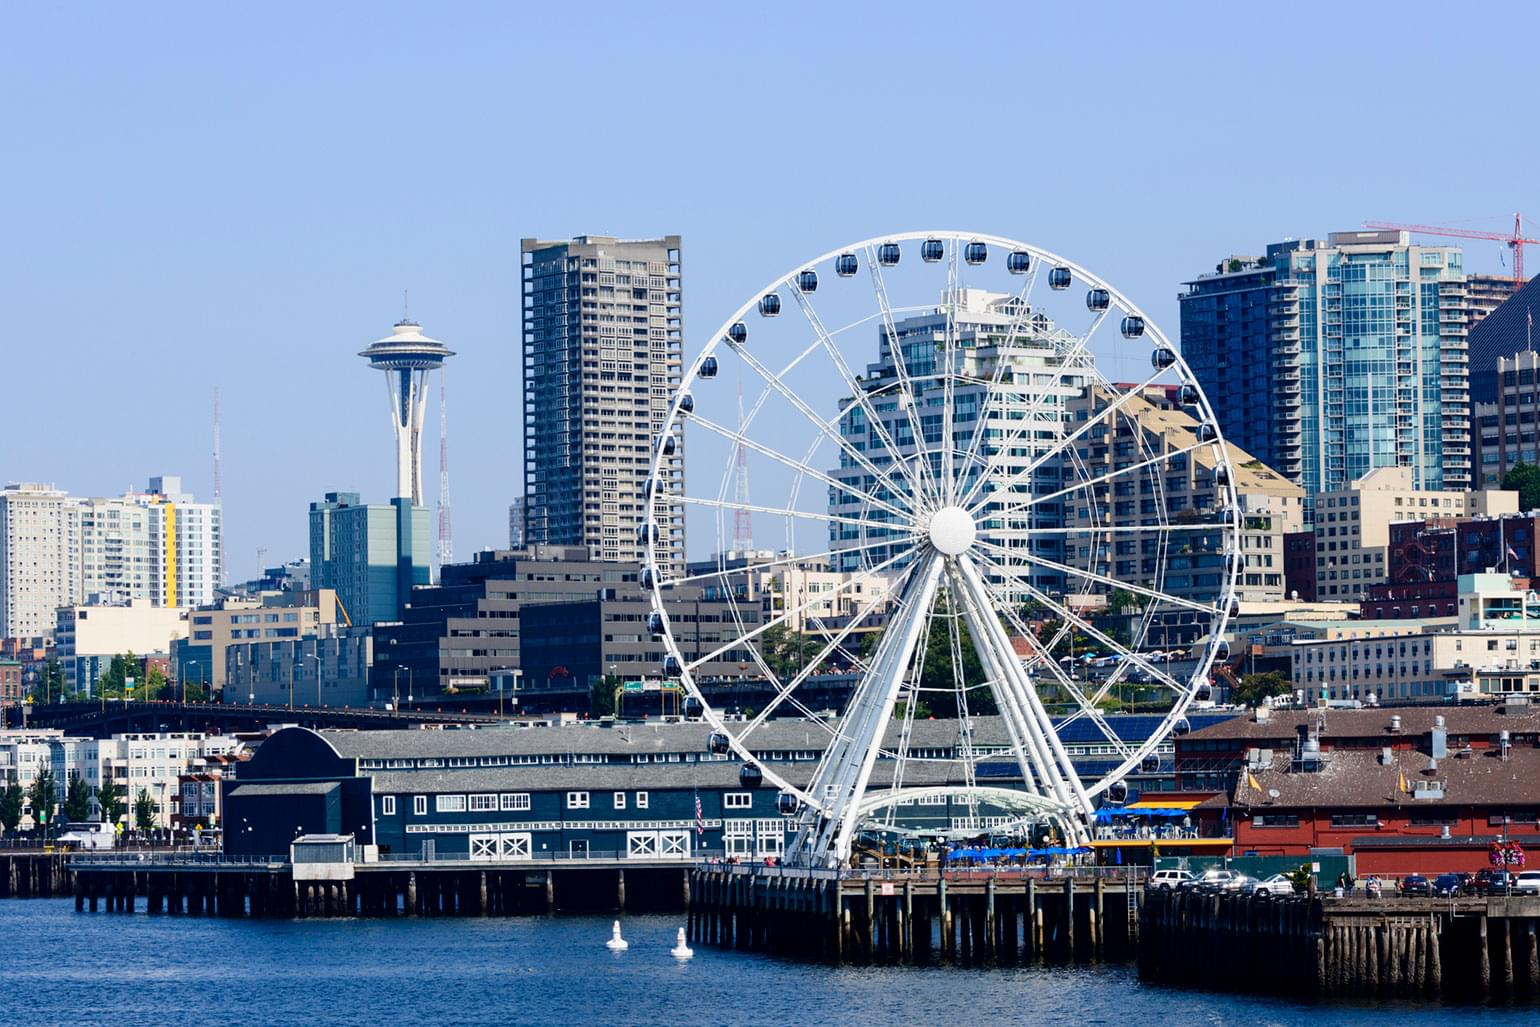 A view of downtown Seattle with the ferris wheel at the Seattle pier and the Space Needle national landmark.